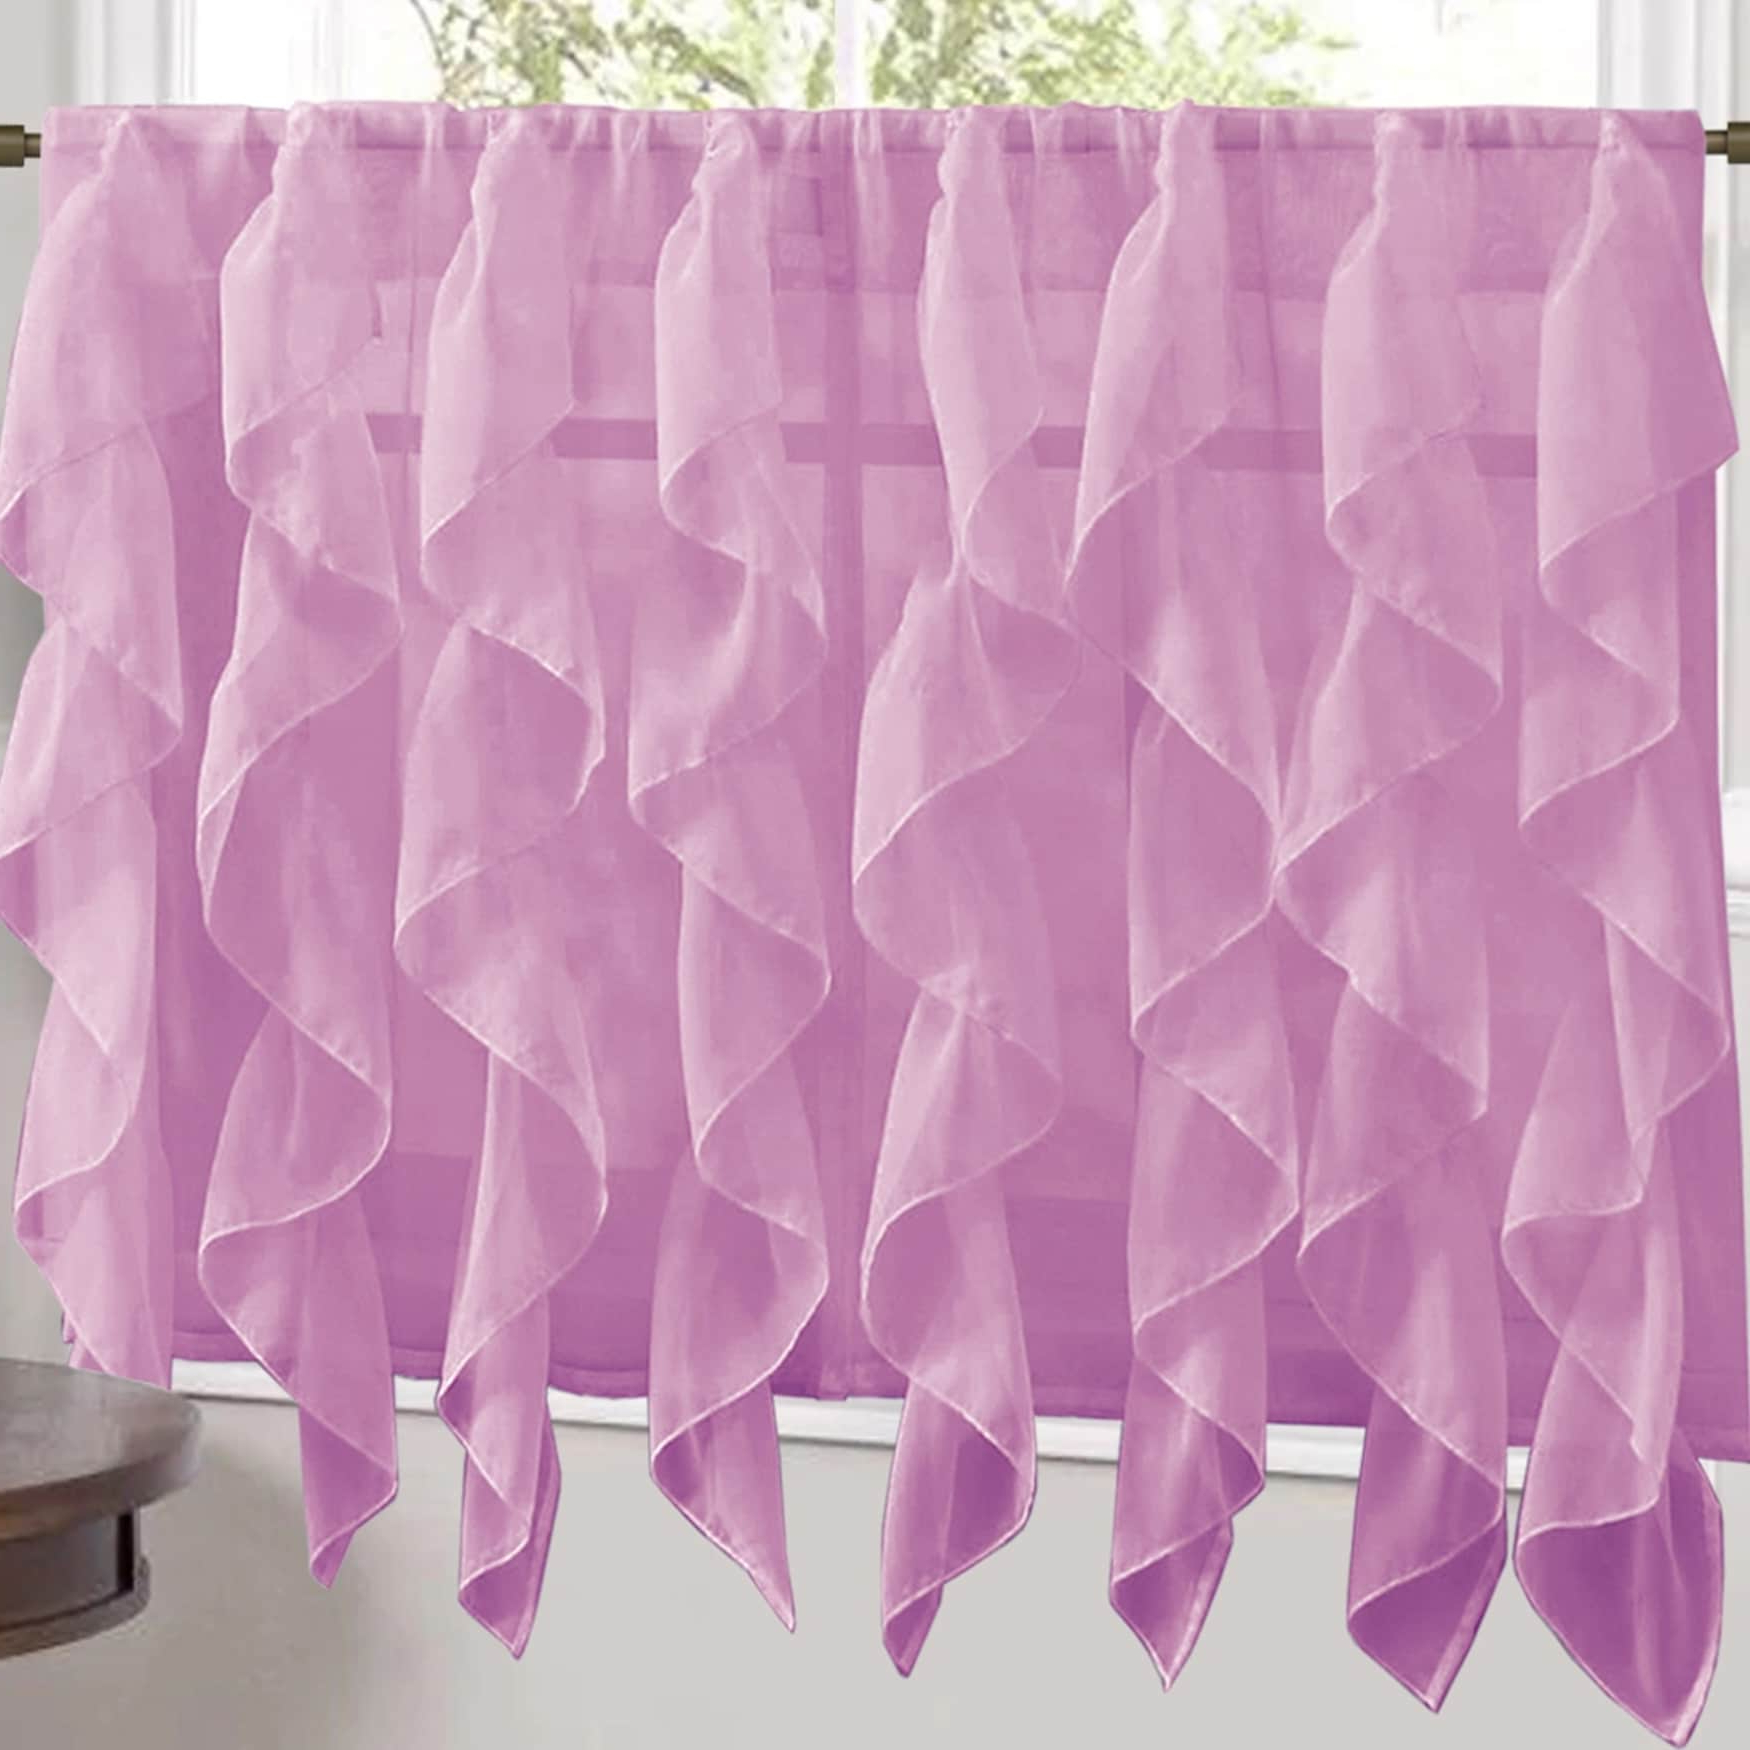 "Favorite Vertical Ruffled Waterfall Valance And Curtain Tiers Throughout Sweet Home Collection Lavender Vertical Ruffled Waterfall Valance And  Curtain Tiers 24"" Tier Pair (Gallery 13 of 20)"